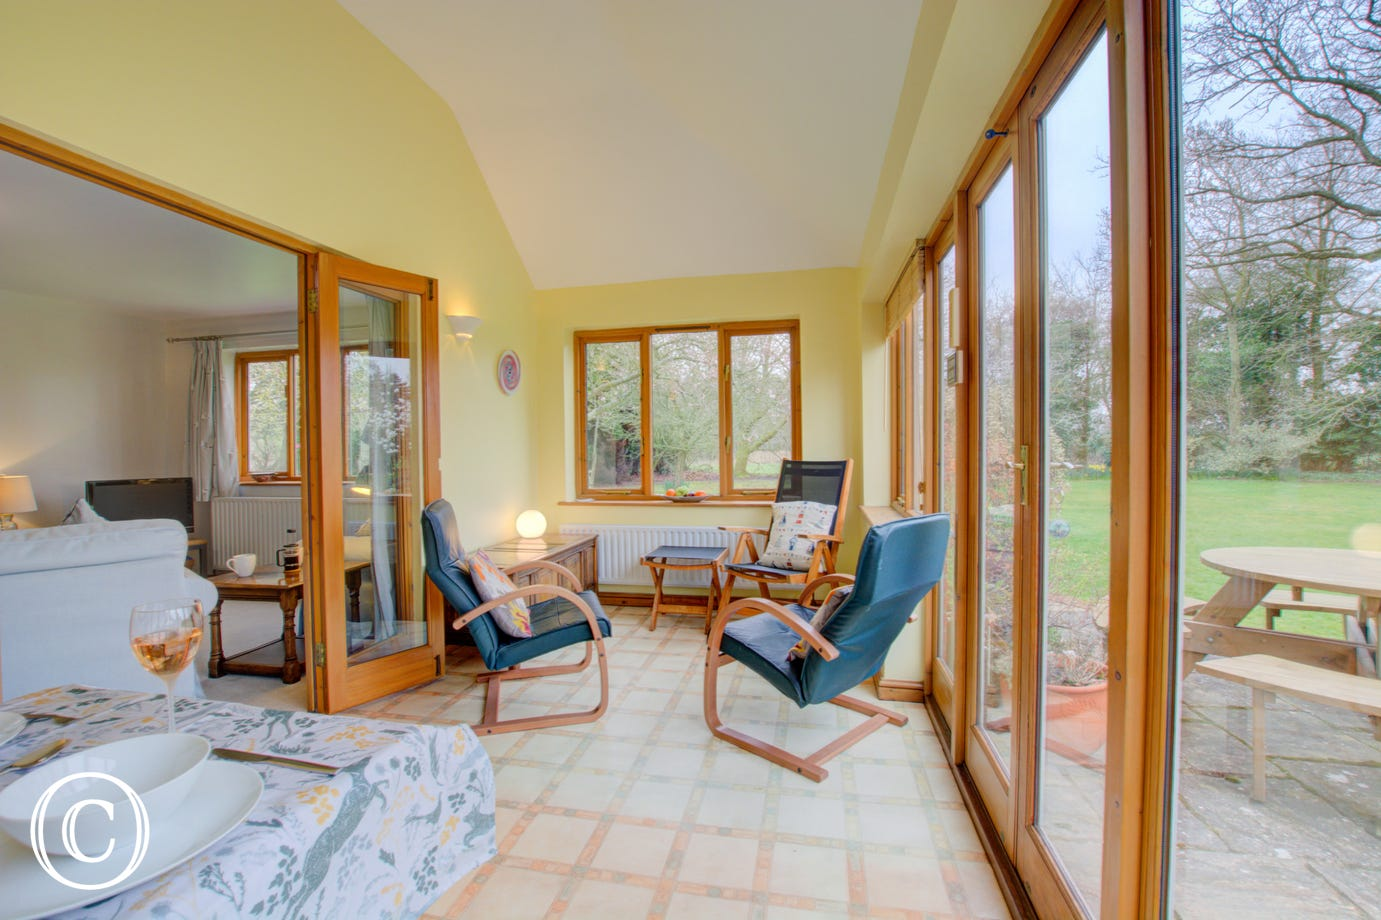 A bright sun room has French doors onto the sunny patio area.